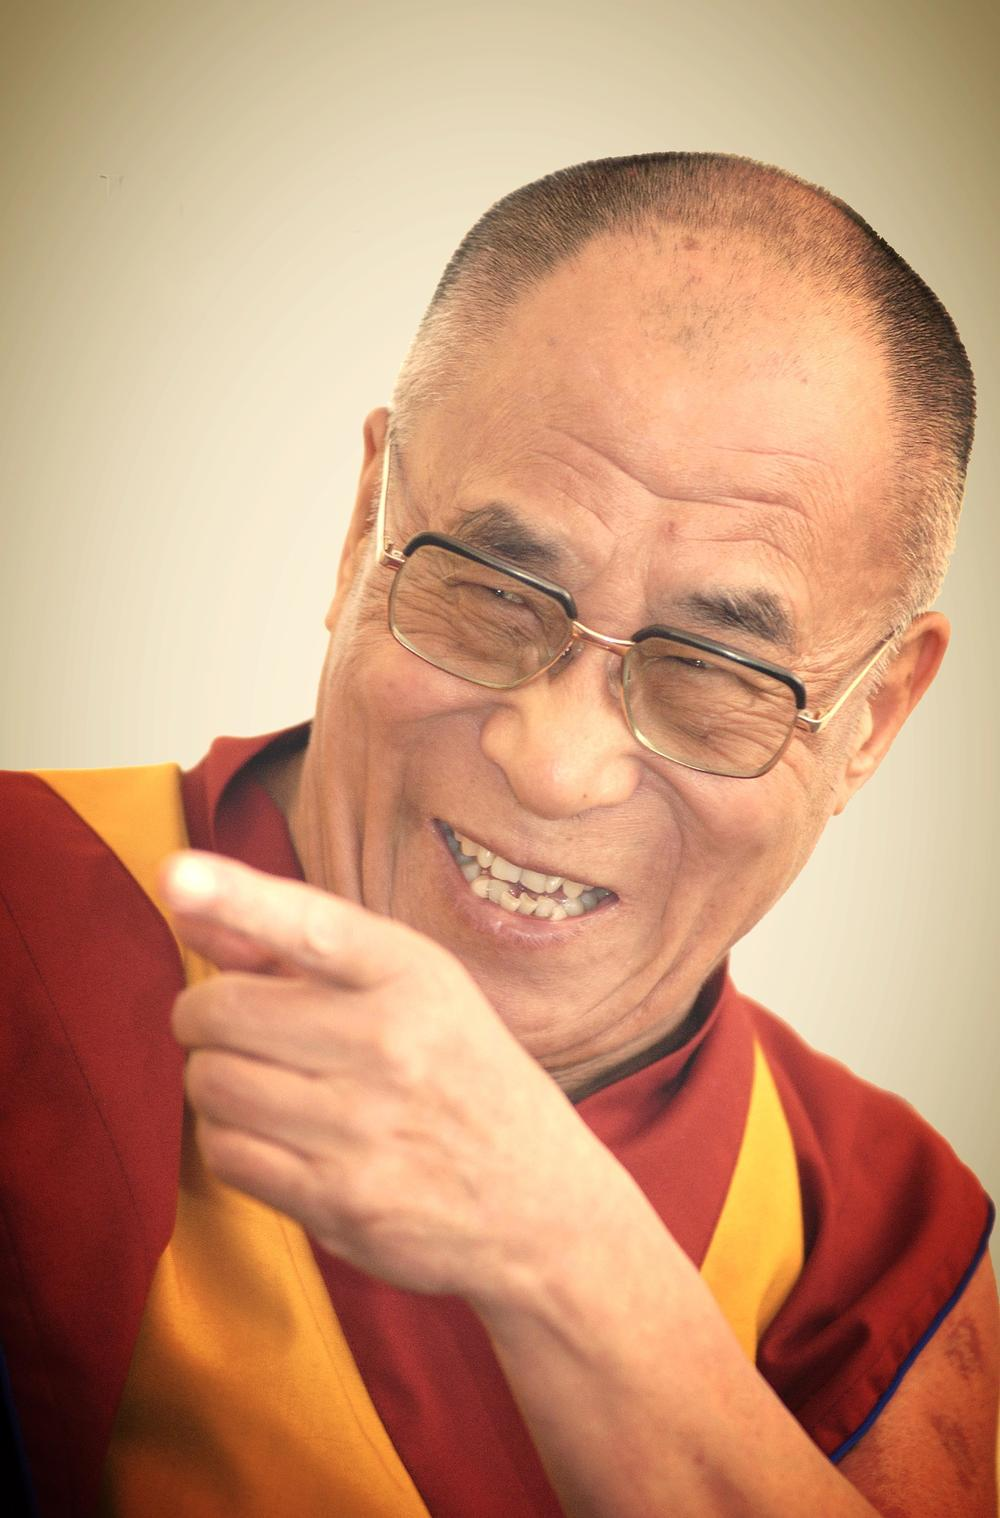 dalai-lama-pointing.jpg